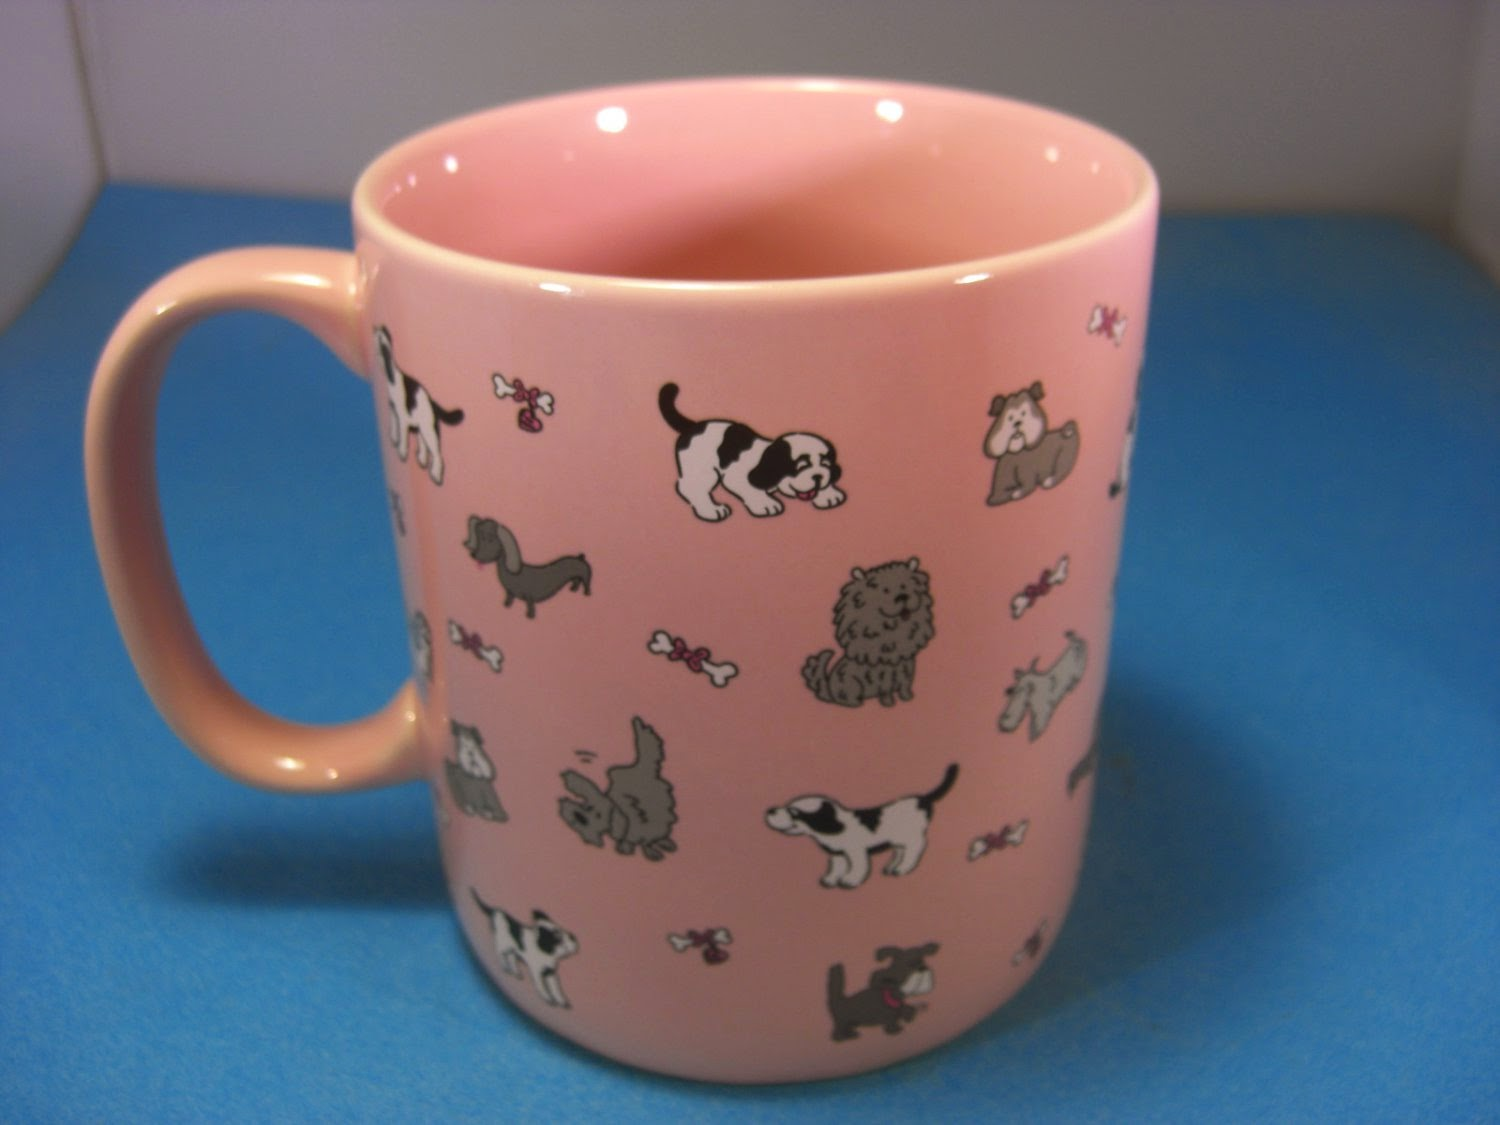 http://bargaincart.ecrater.com/p/16355053/giant-big-dogs-pink-ceramic